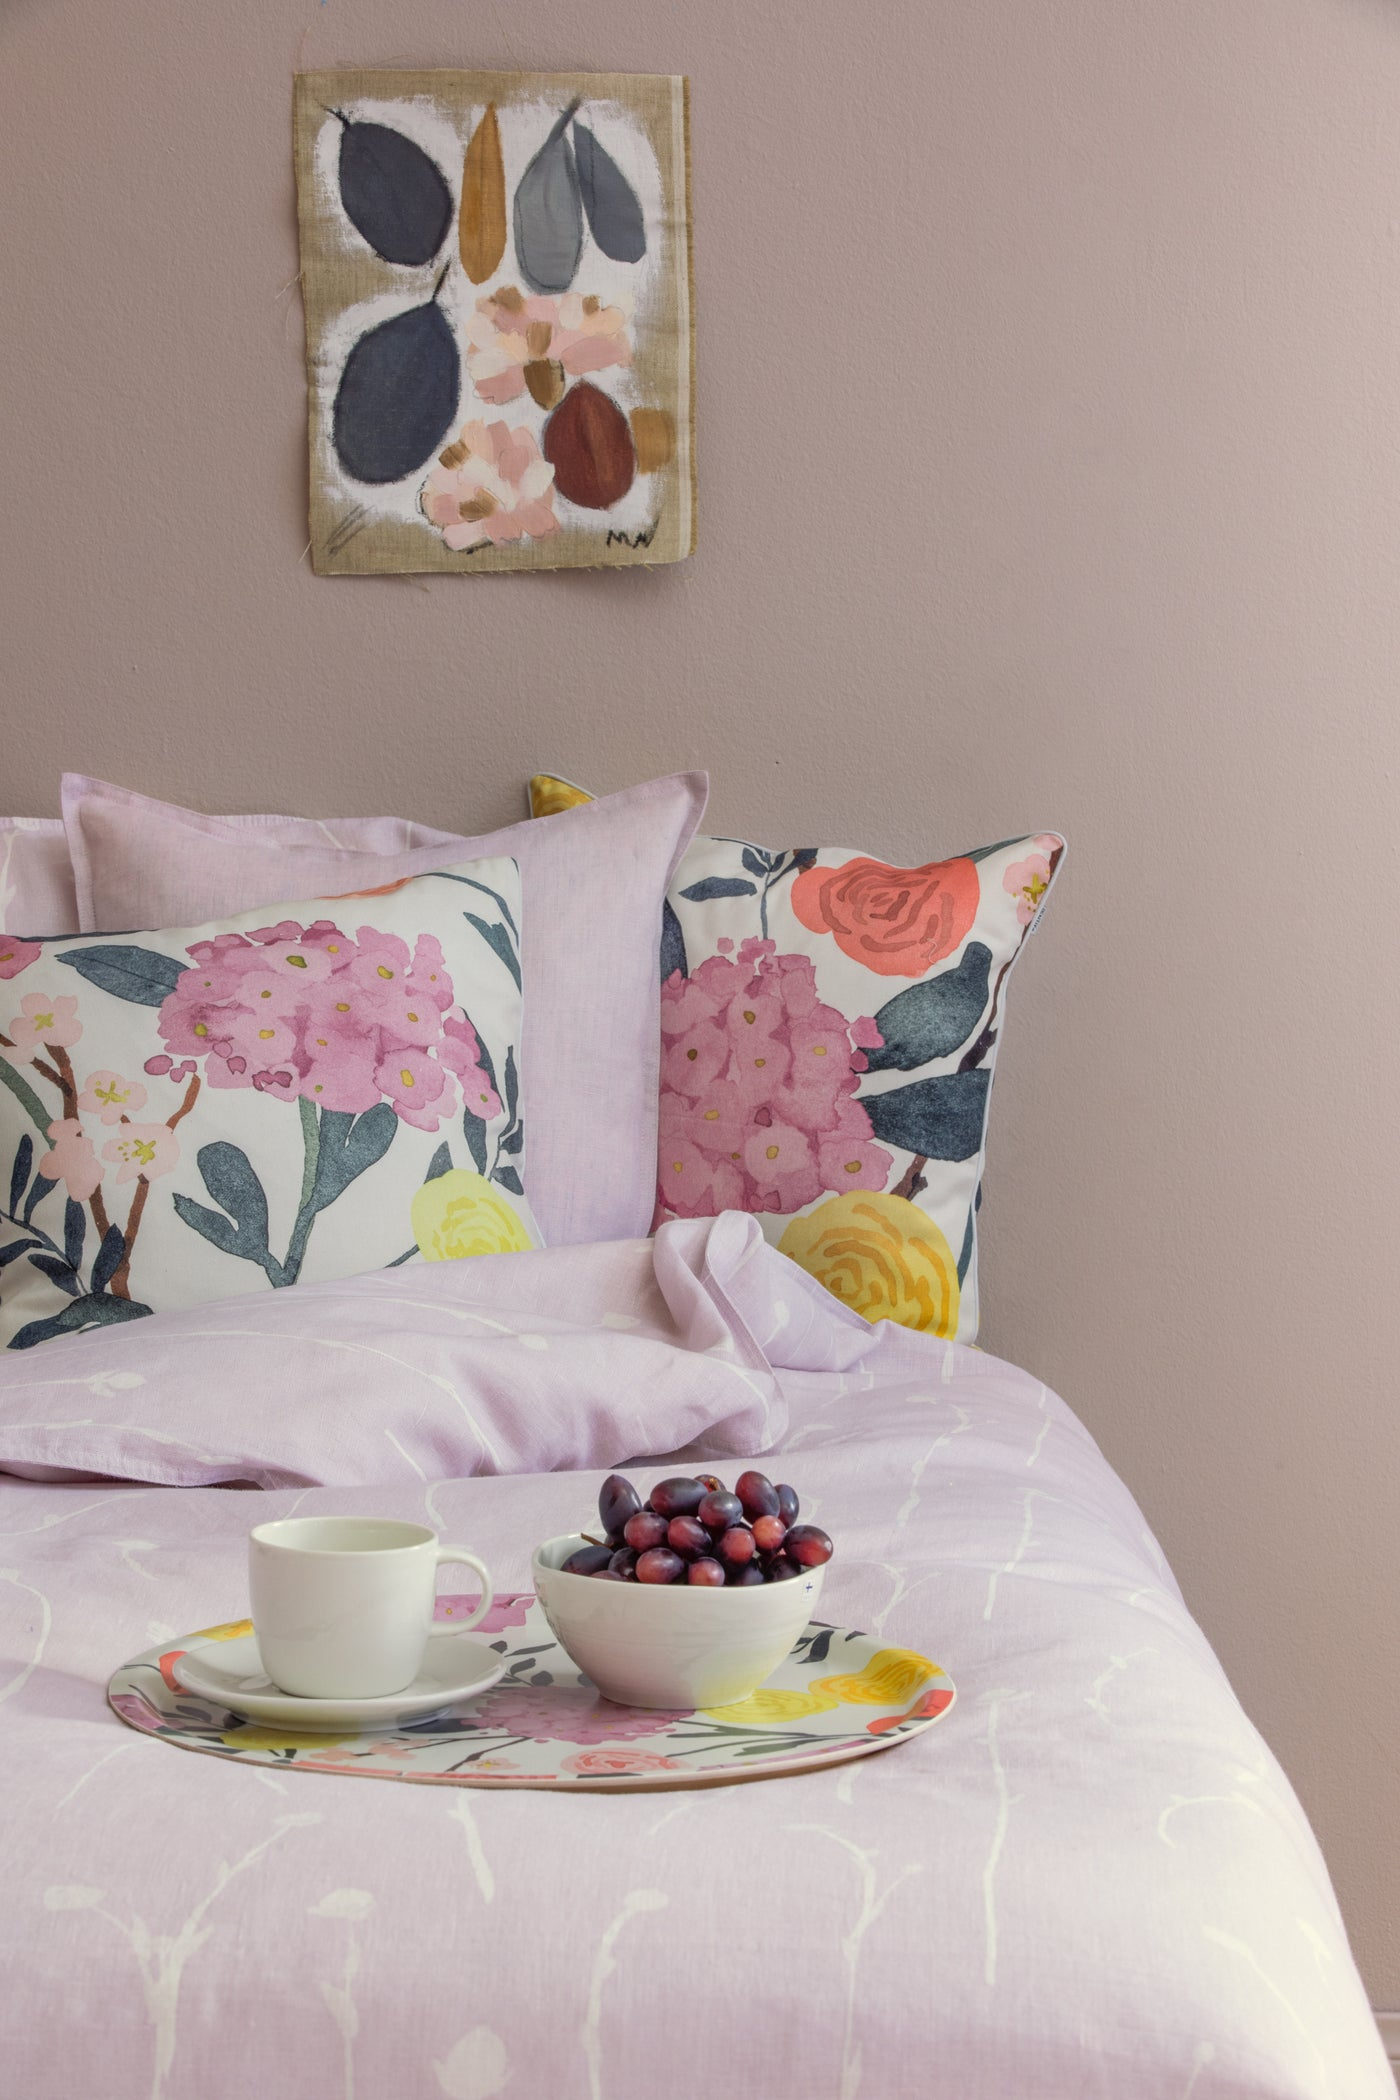 Shop The Look: Your bedroom is your garden